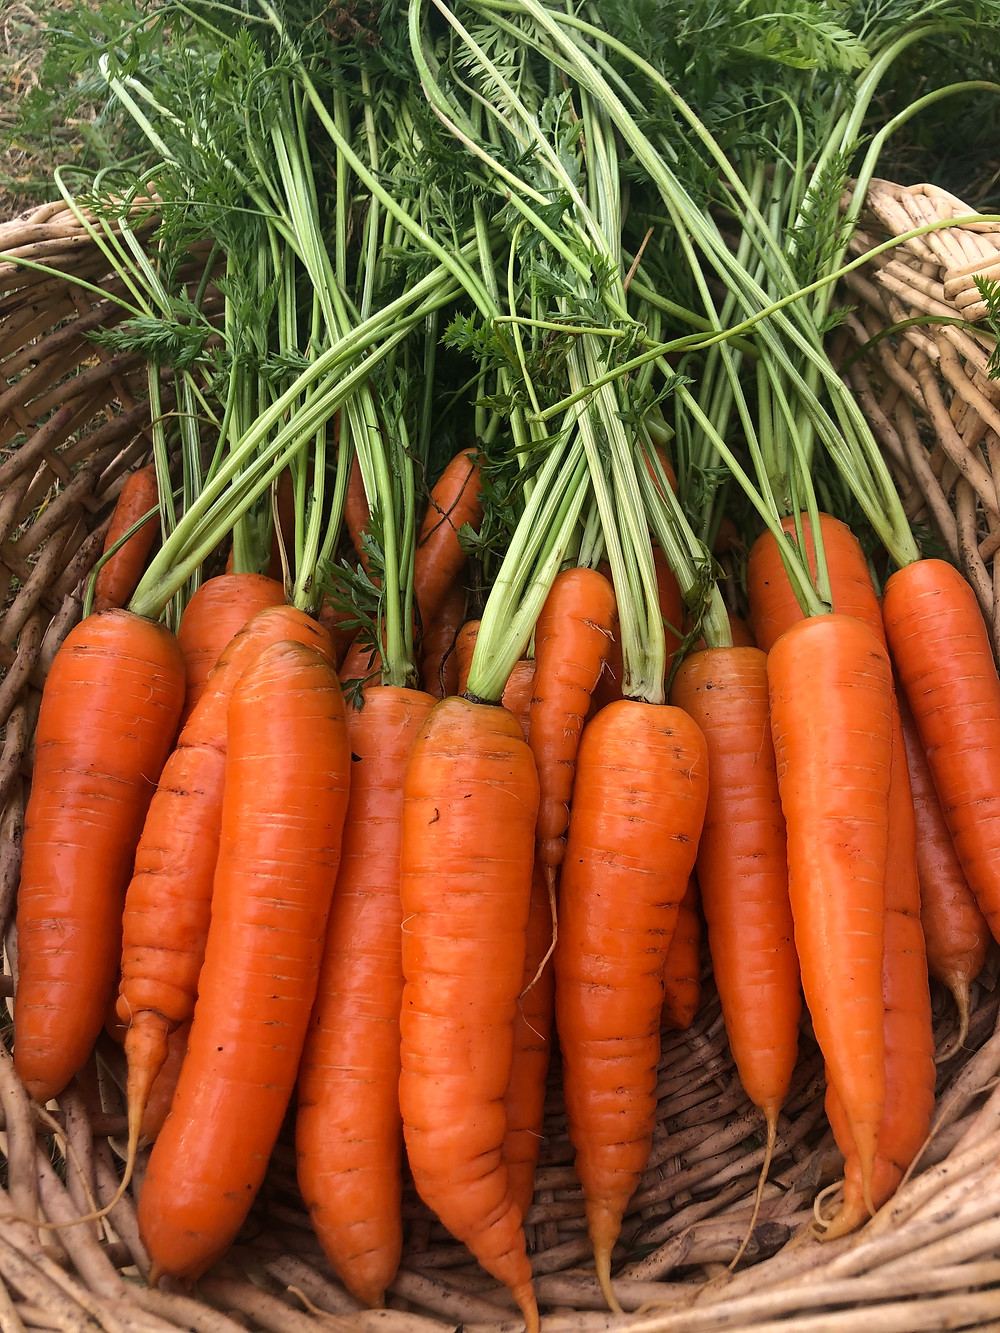 Growing carrots in zone 3, Alberta, Canada.  When to plant carrots in zone 3, Alberta, Canada.  When to harvest carrots.  How to harvest carrots.  How to store garden carrots.  Growing carrots in my zone 3 vegetable garden.  How to grow carrots in Alberta.  Best tips for growing carrots in zone 3.  Best tips for growing carrots in Alberta.  Best tips for growing carrots in Canada.  Companion planting carrots.  When to seed carrots in zone 3.